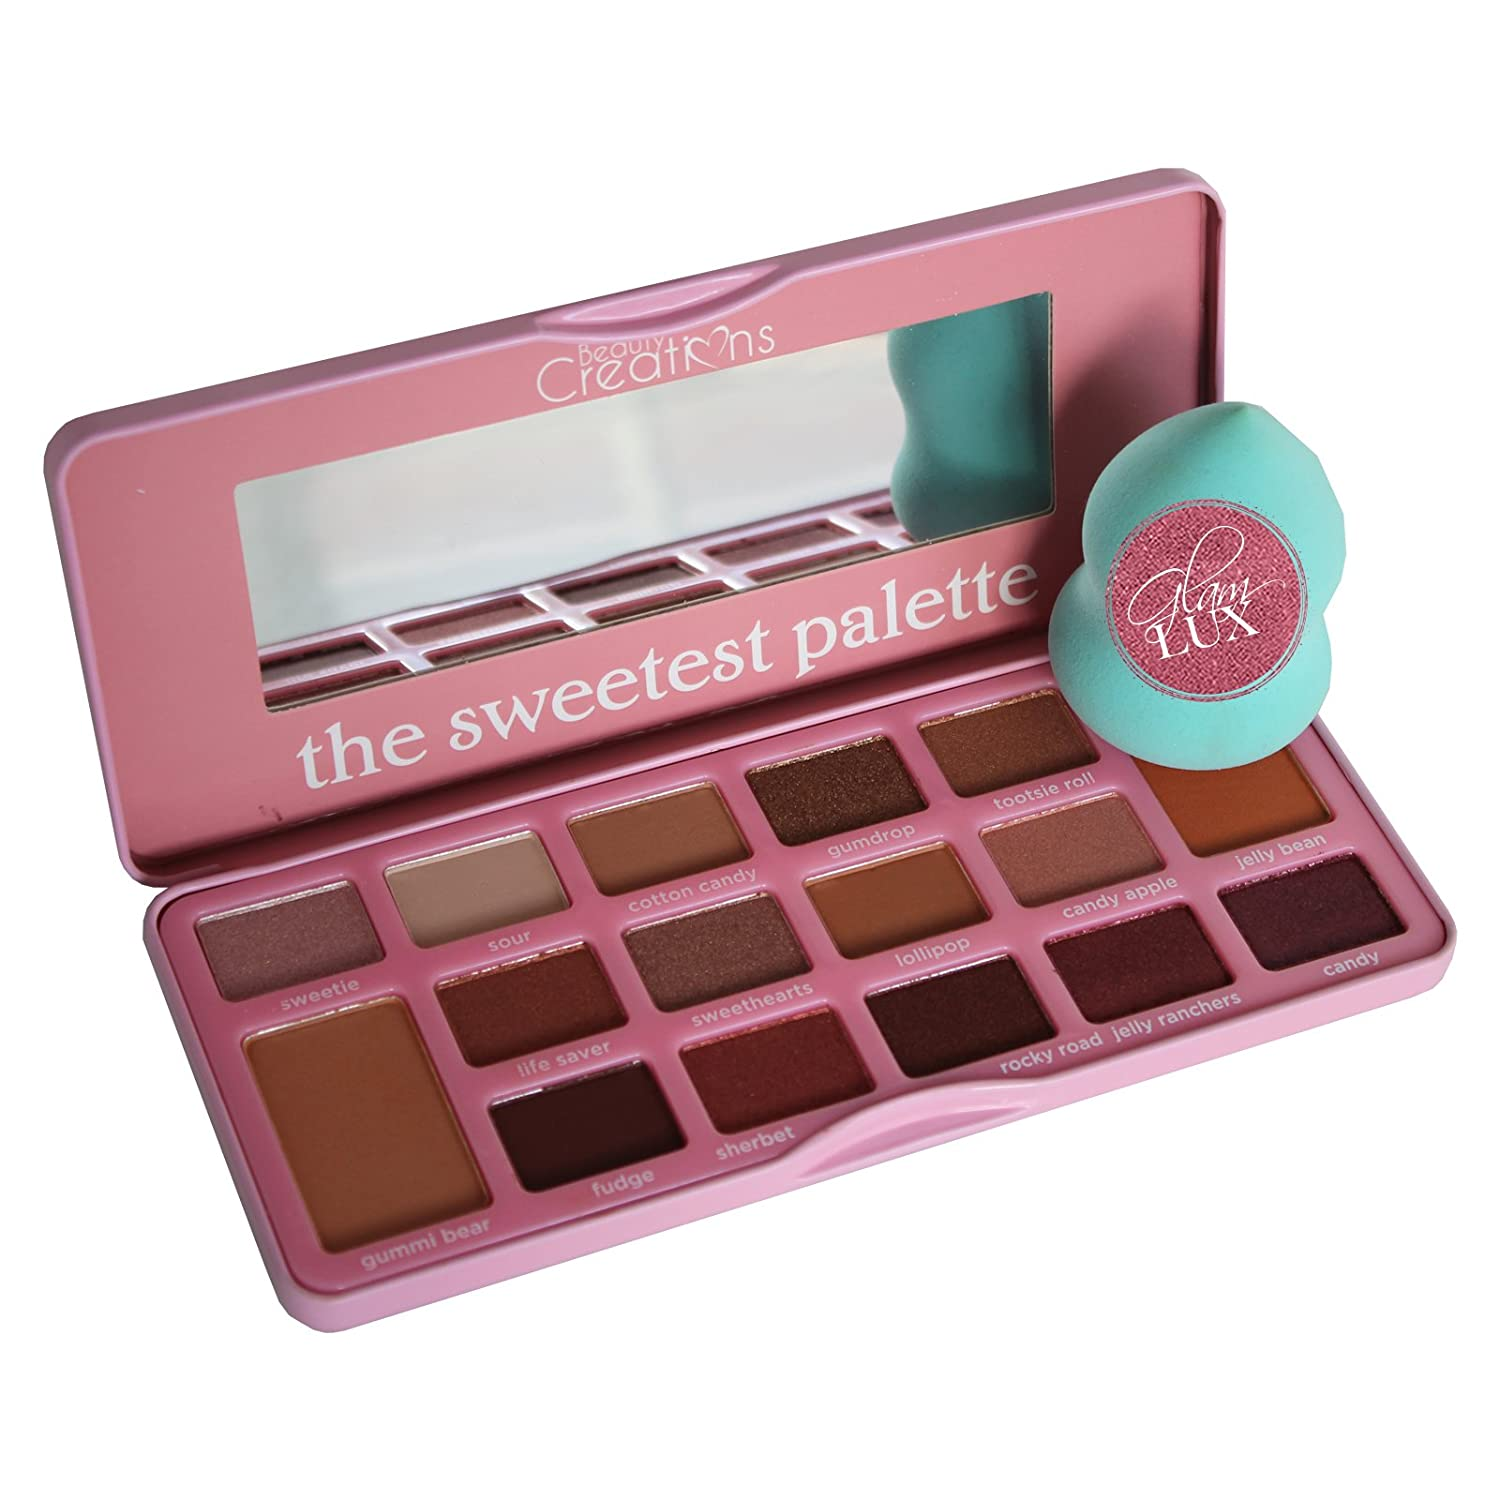 Glam Lux Bundle Beauty Creations Sweetest Palette 16 gorgeous candy scented shades Ultra Long lasting Pigmented Mineral Pressed Shimmer and Matte Eye shadow Palette and Glam Lux Beauty Blender